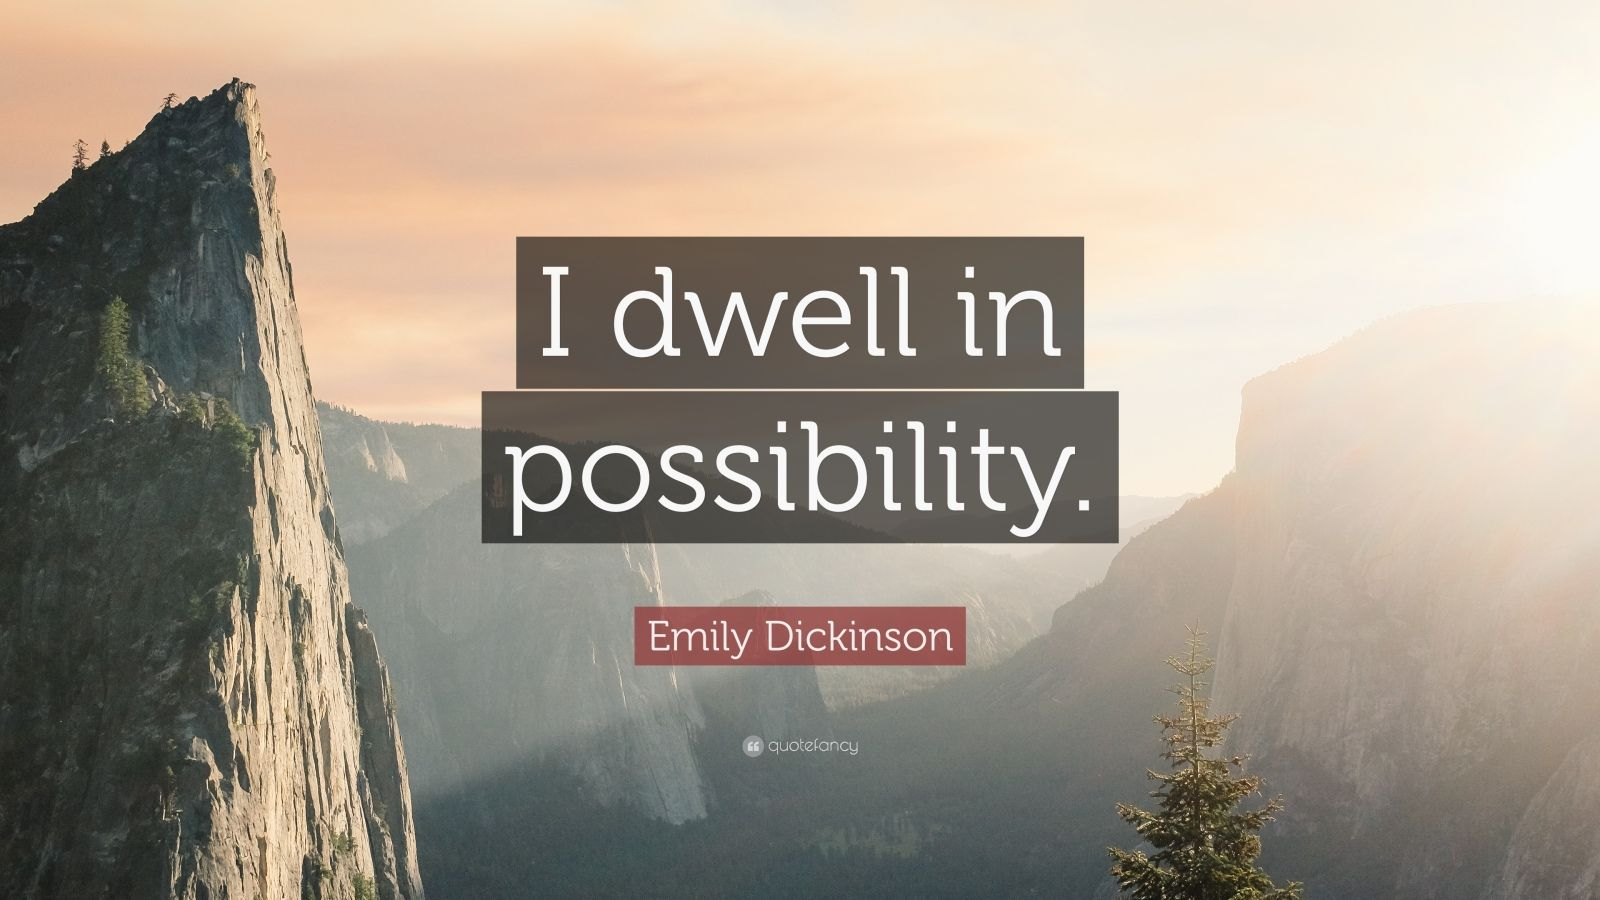 a biography of emily dickinson a known american poet Emily dickinson | emily ratajkowski | emily blunt | emily dickinson | emily | emily osment | emily's list | emily giffin | emily henderson | emily jane fox | em.